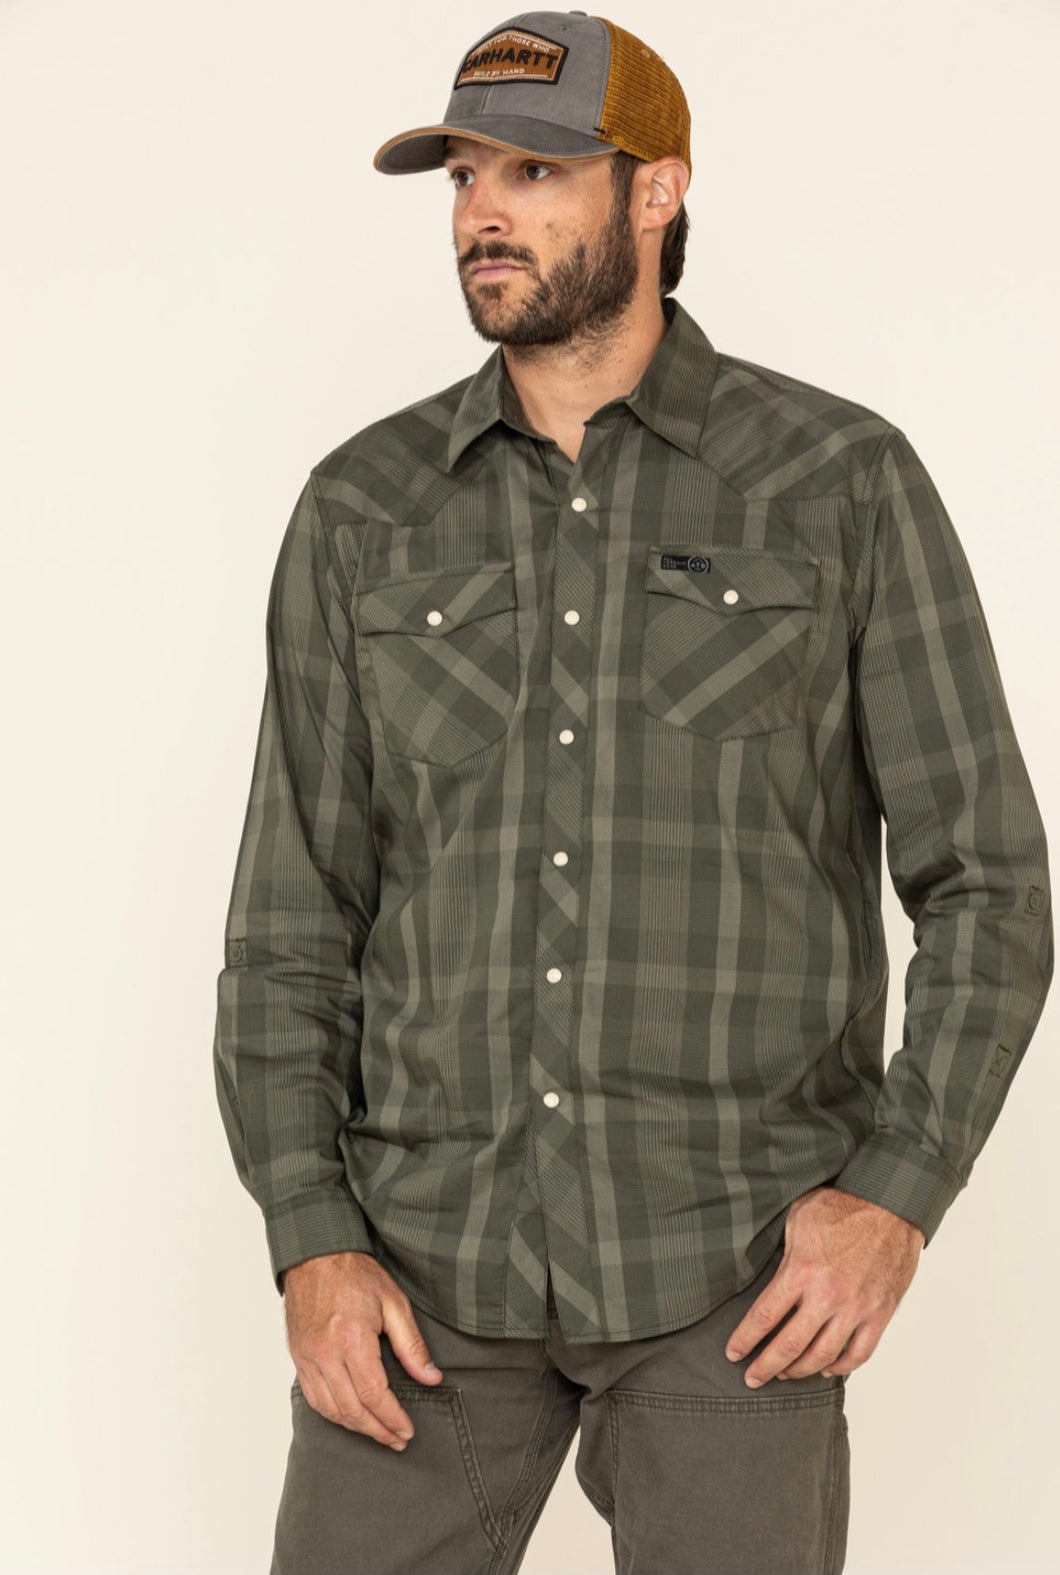 Wrangler Green Plaid Utility Shirt